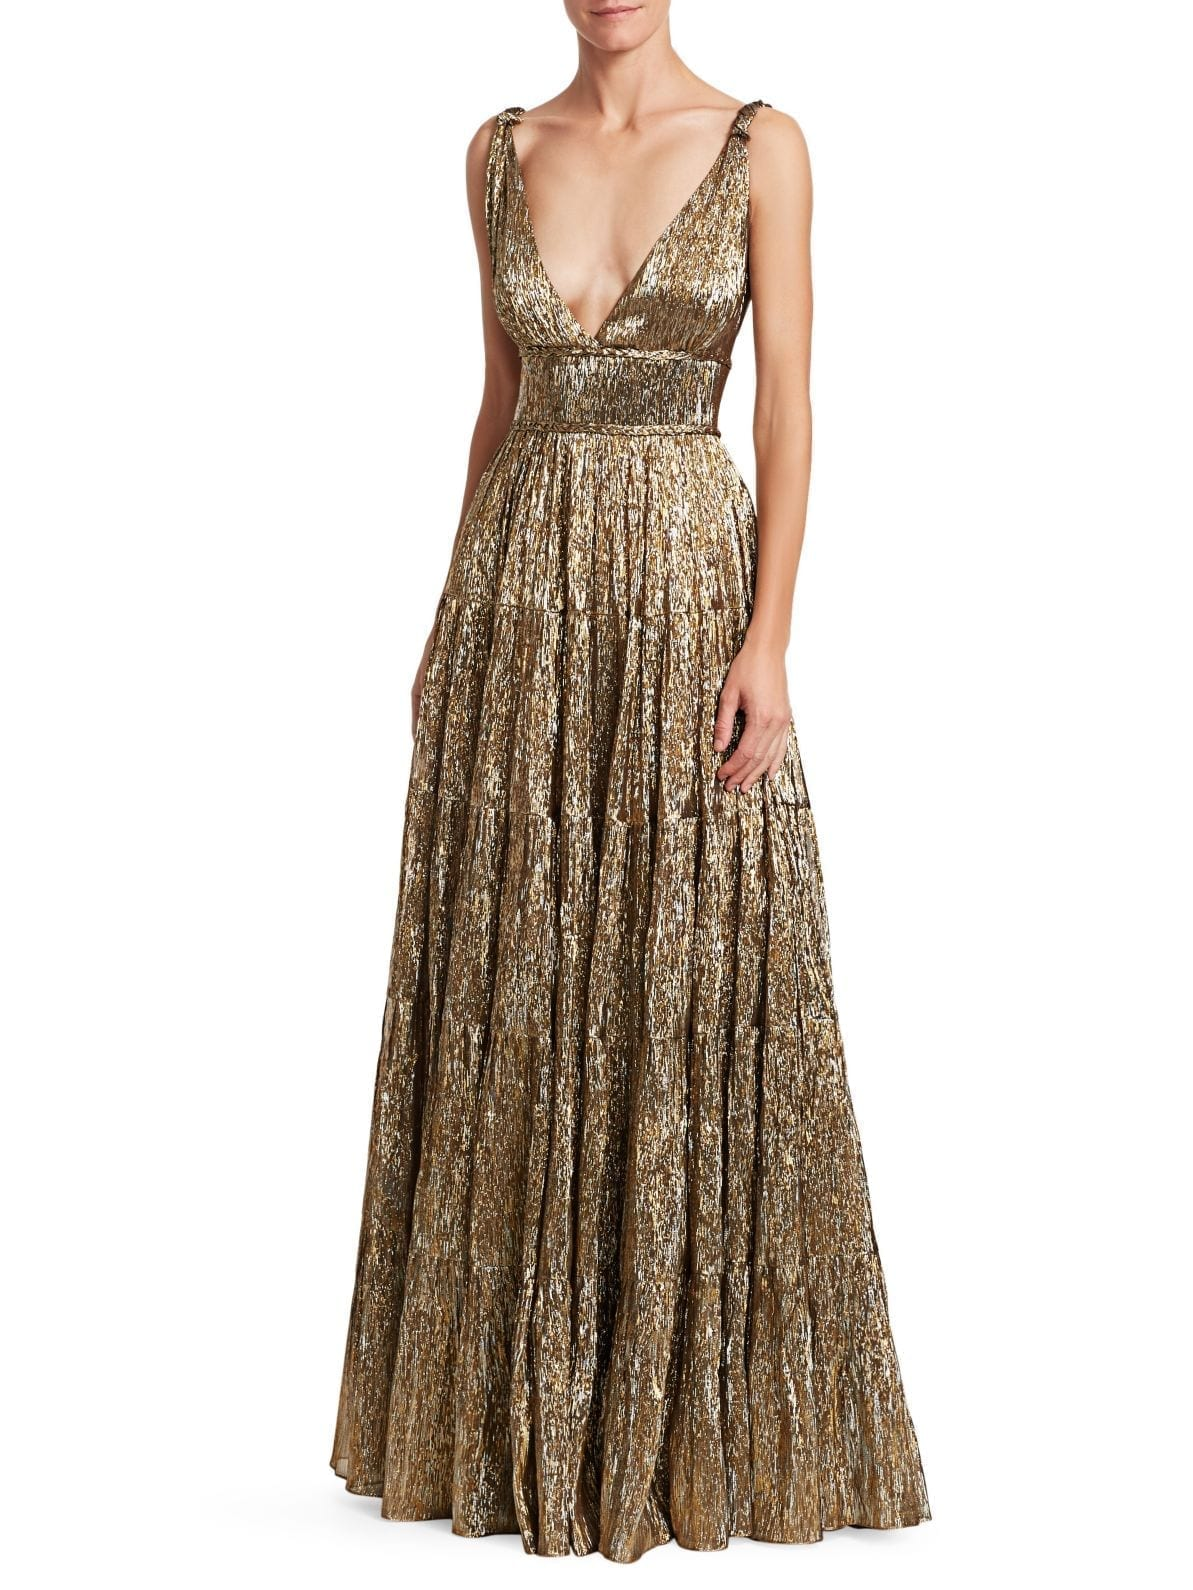 OSCAR DE LA RENTA Crinked Metallic A-lined Gold Gown